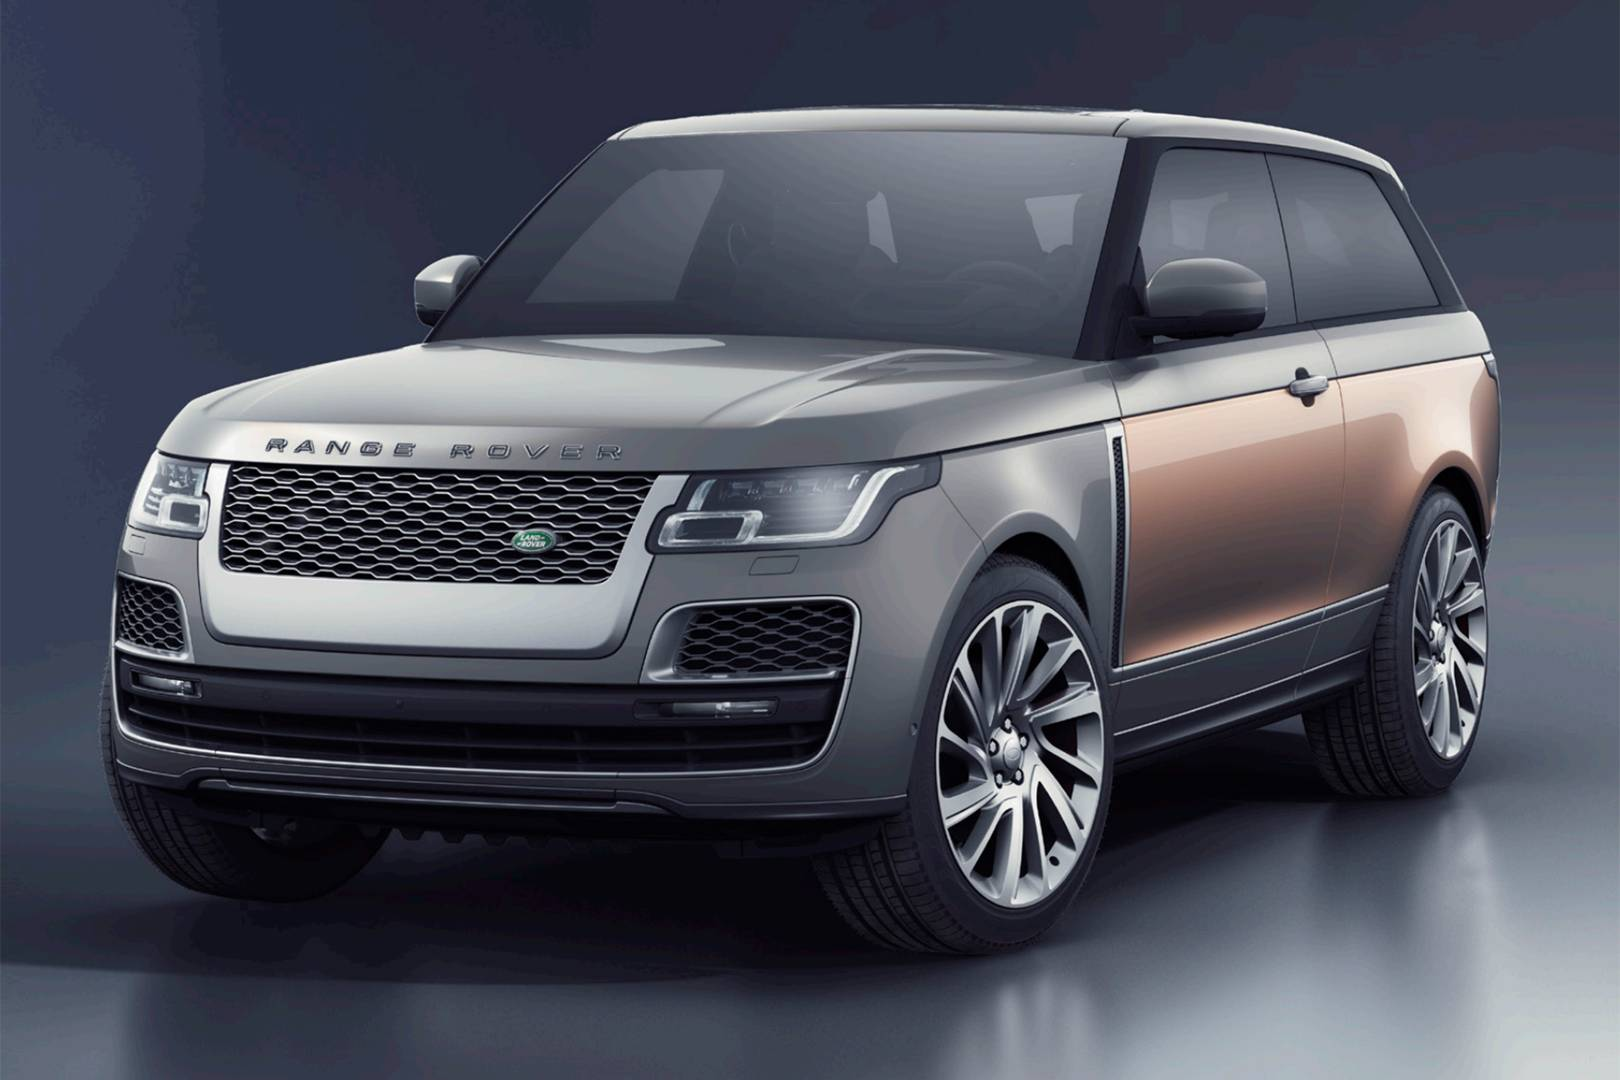 how mode showrooms a land reviews and w prices much specs models rover news range evoque both best new deals scale is h latest landrover ashx crop